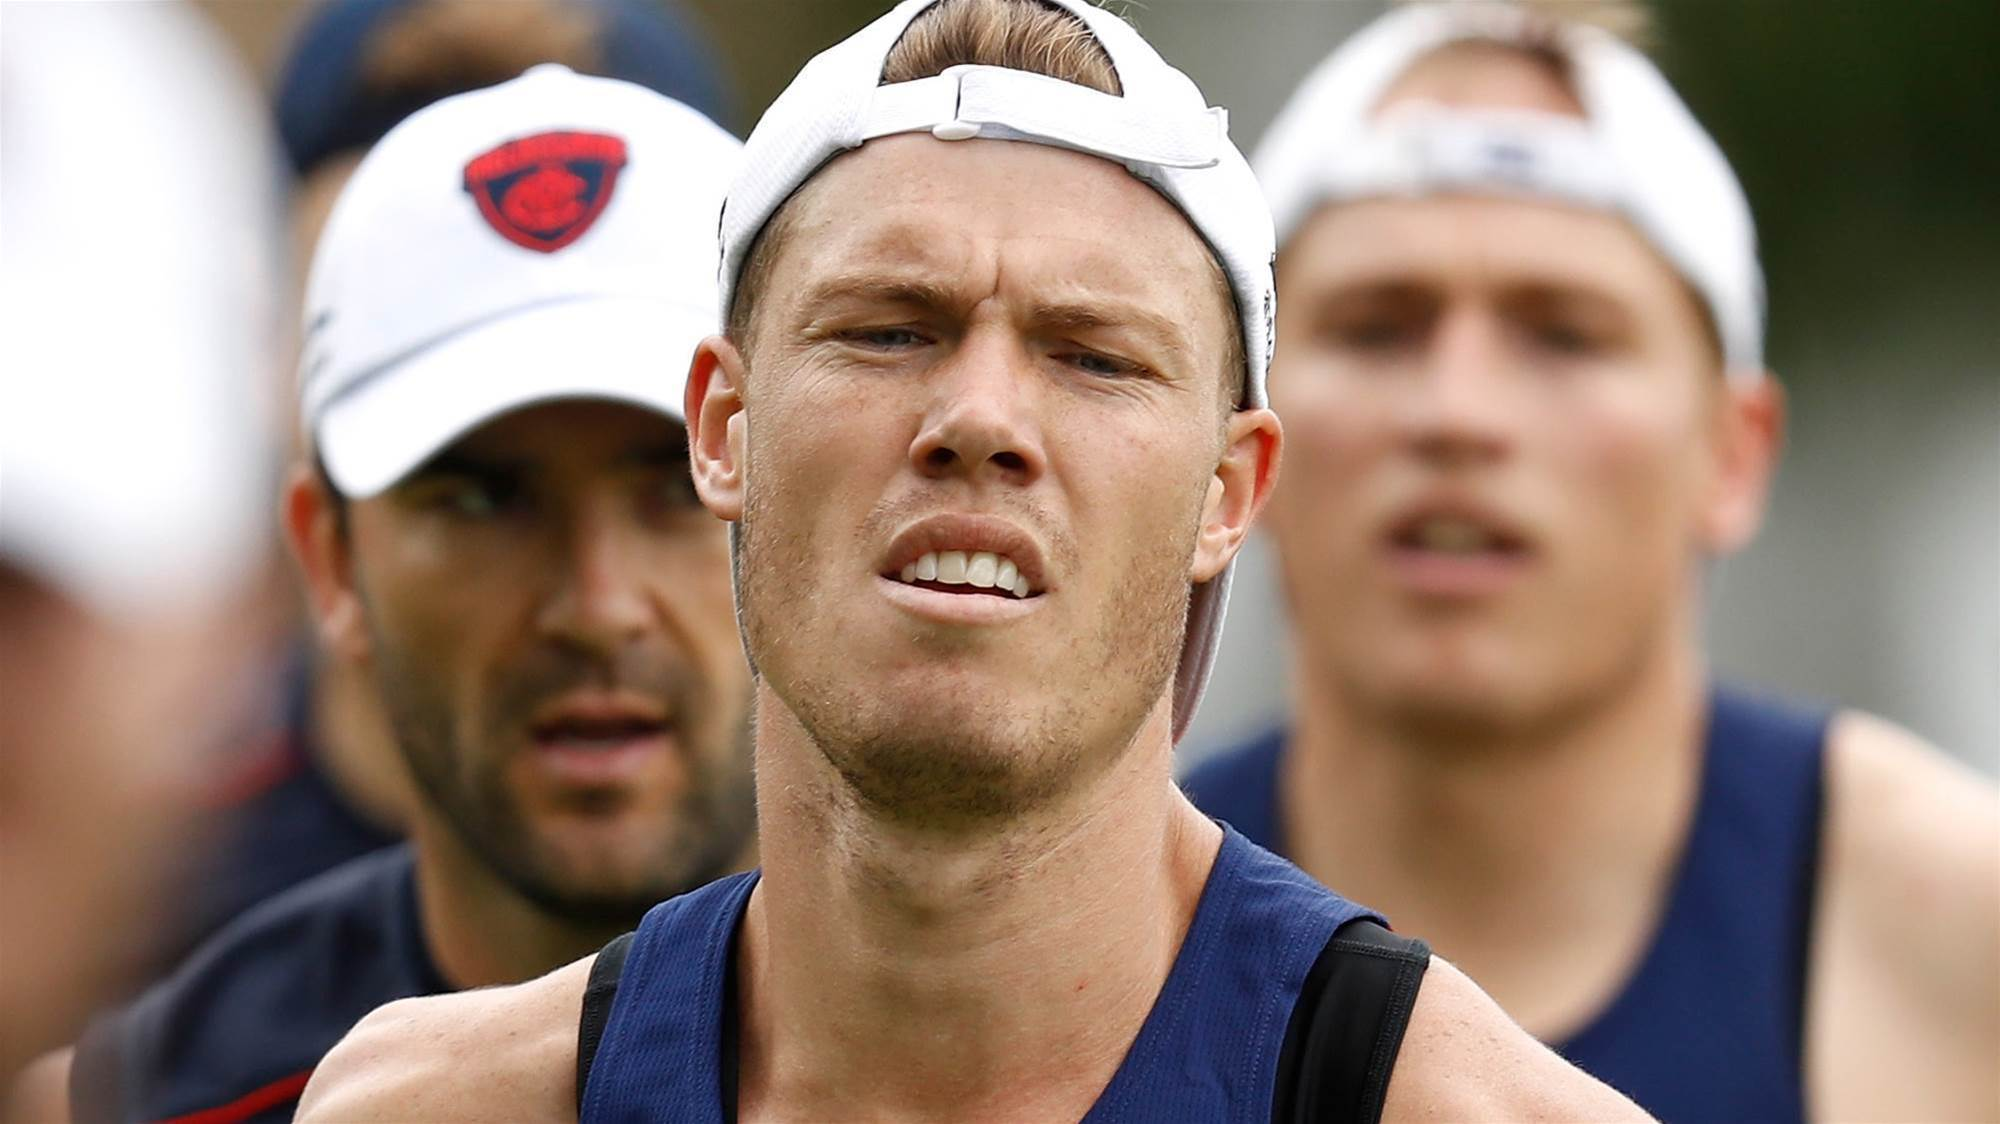 AFL star fined $10k for betting activity